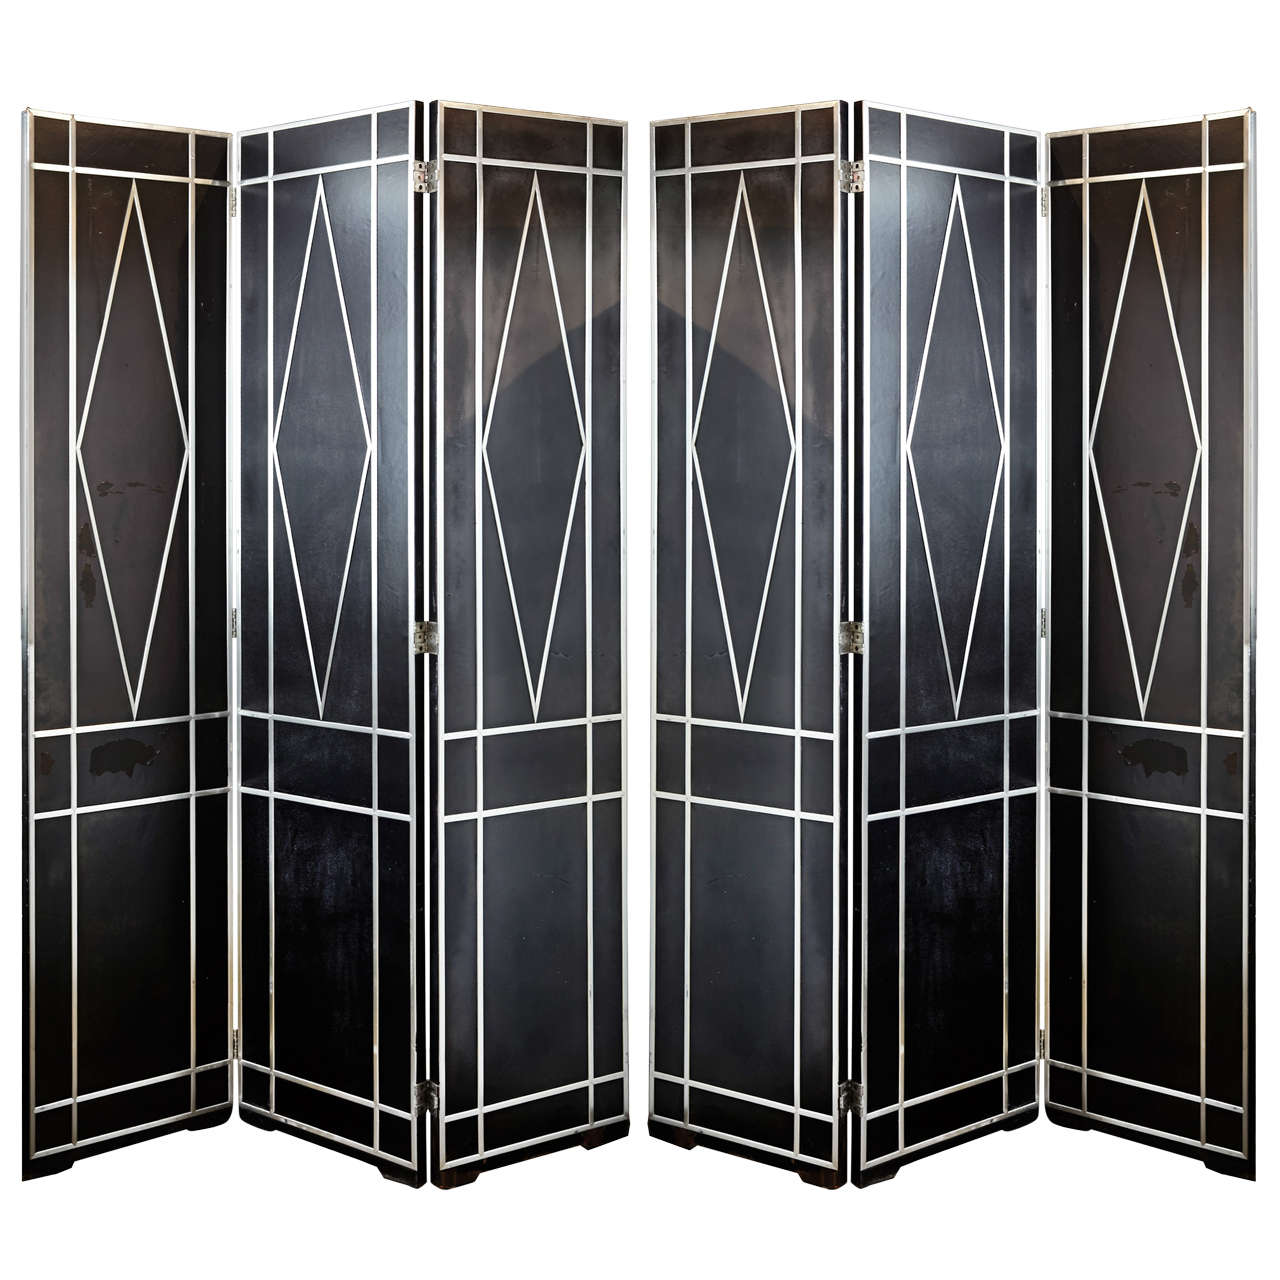 Pair of Massive Art Deco Revival Folding Screens